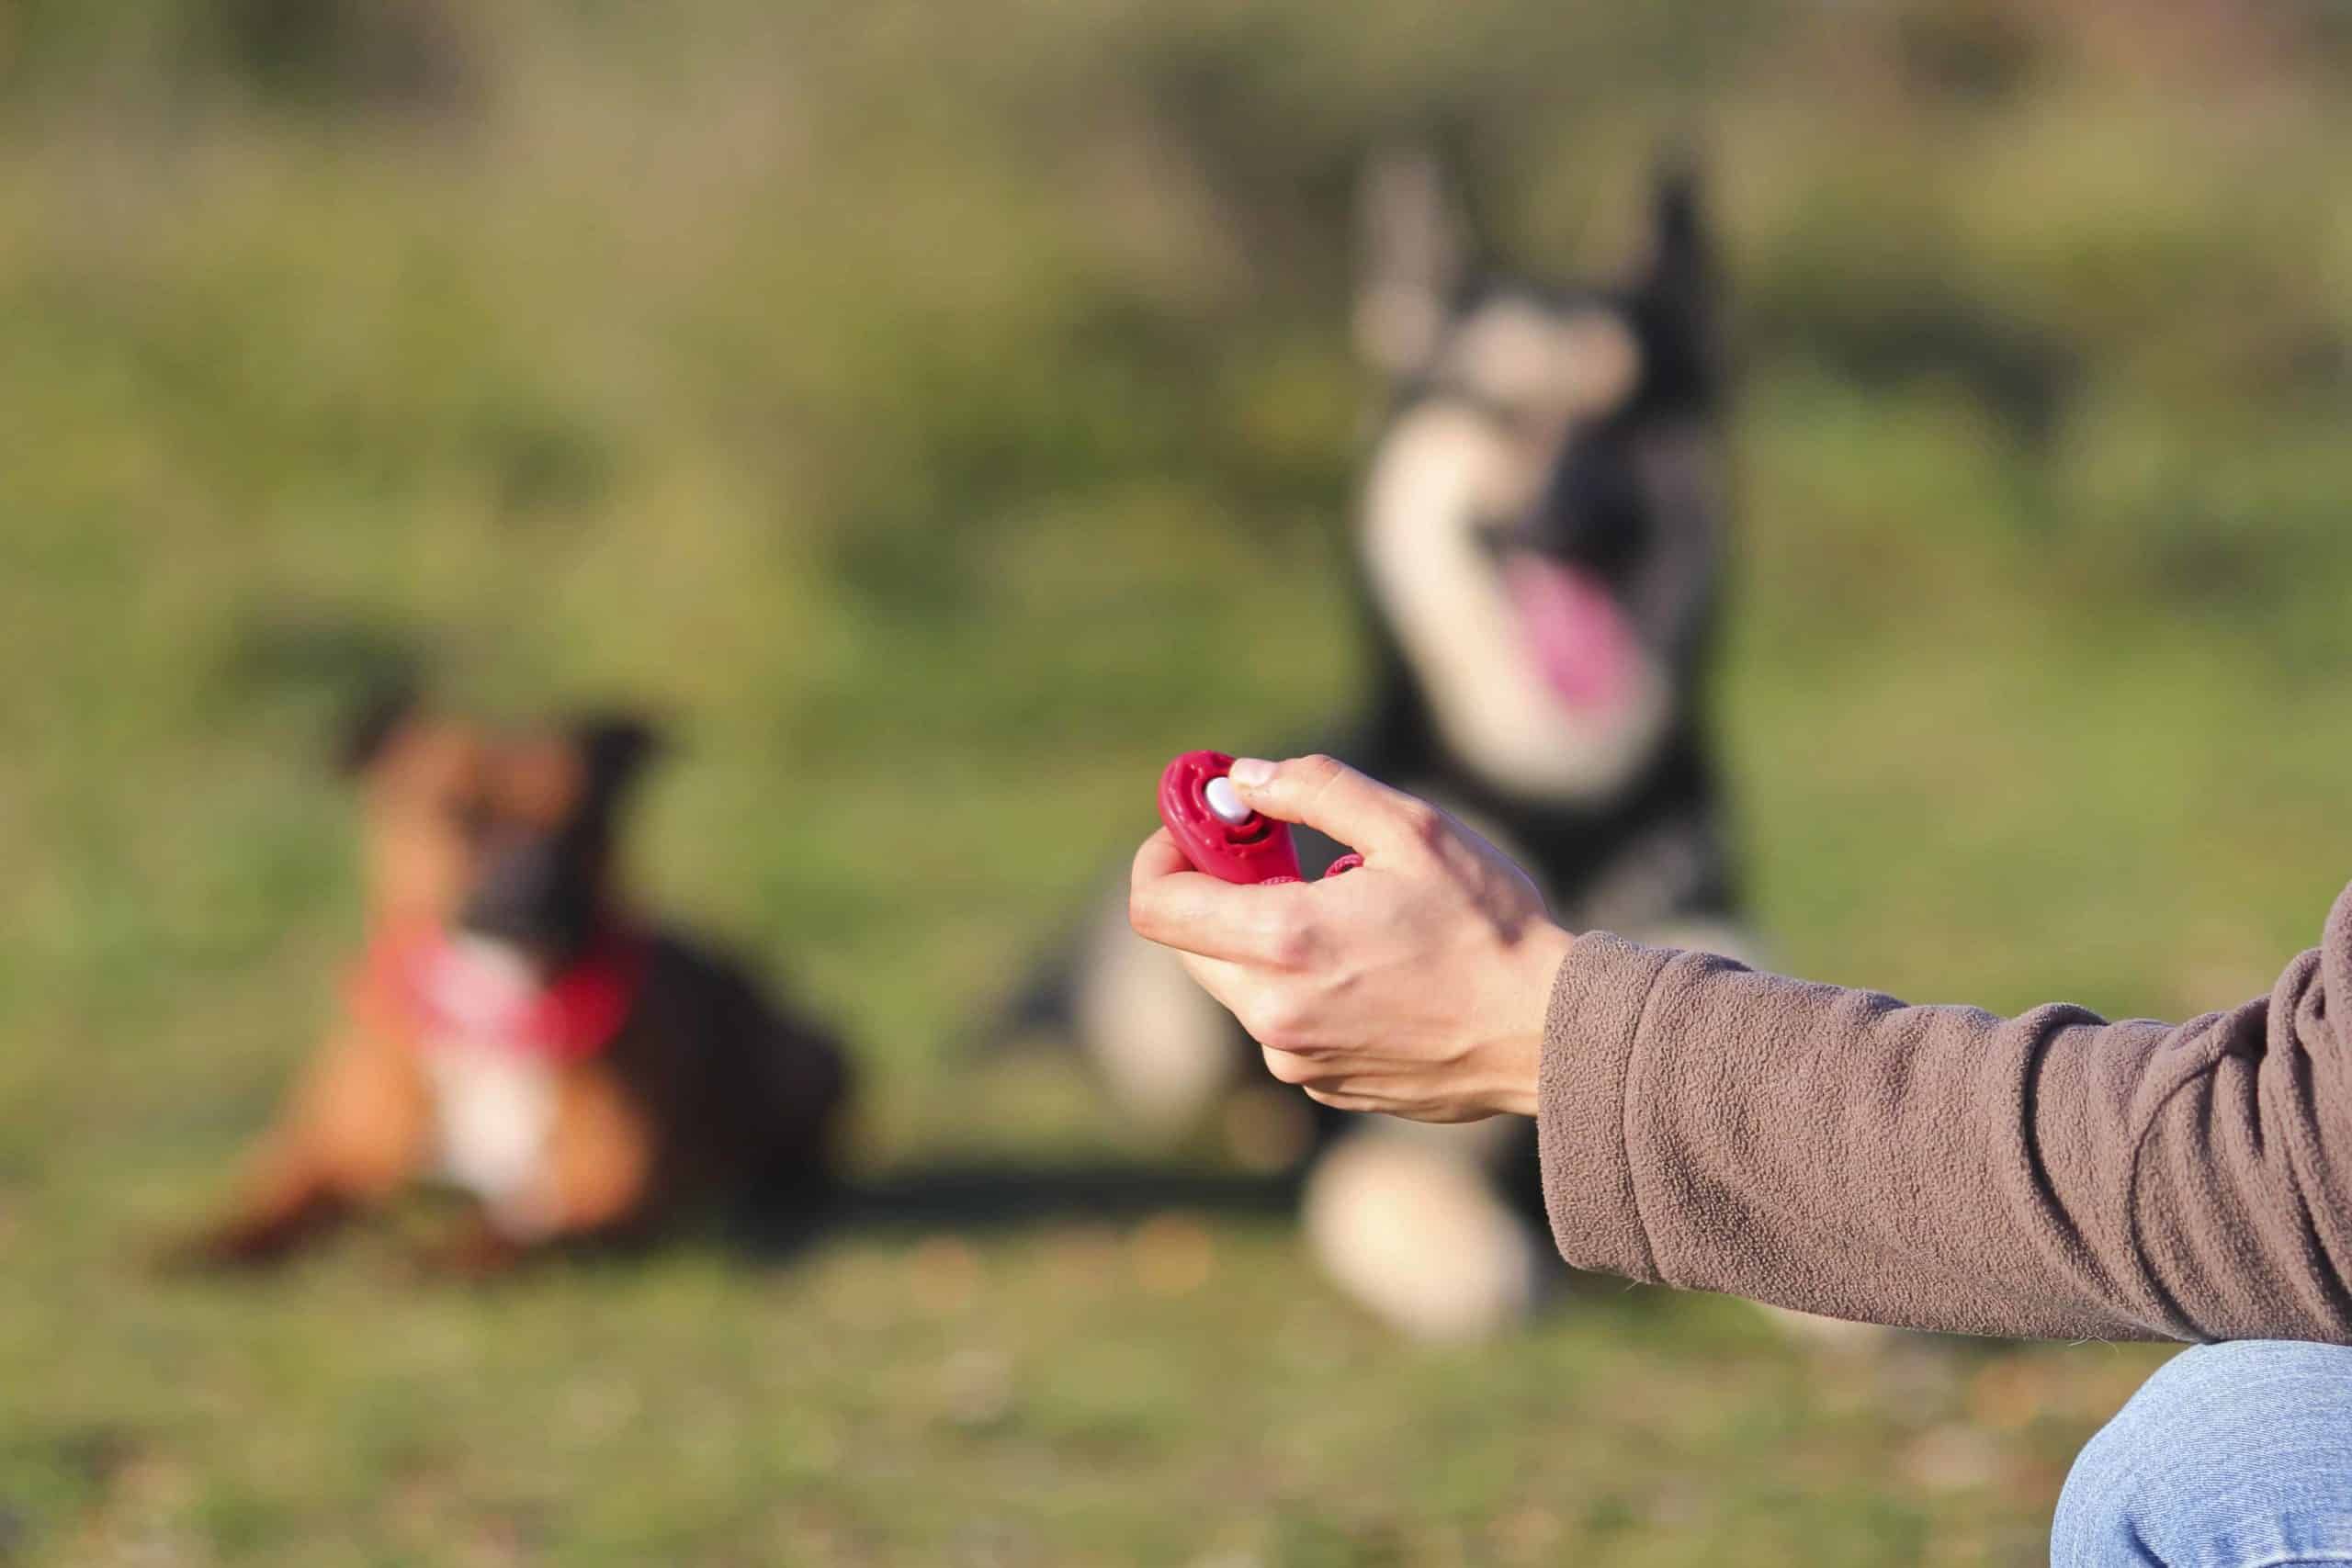 Clicker training works because the button on the device gives off an artificial sound that dogs don't typically hear.